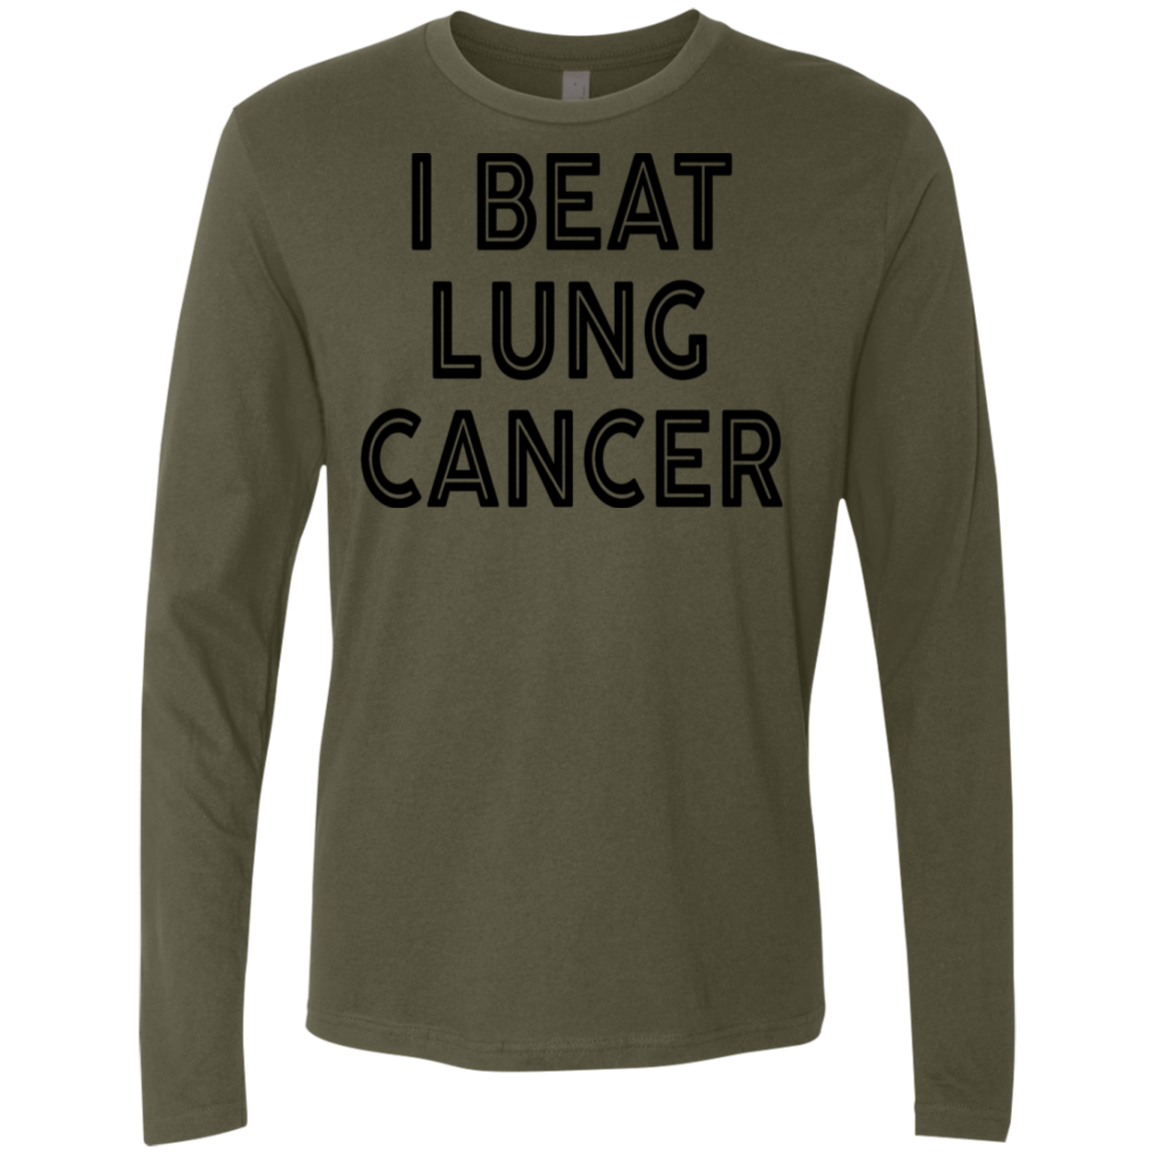 I Beat Lung Cancer Men's Long Sleeve Tee